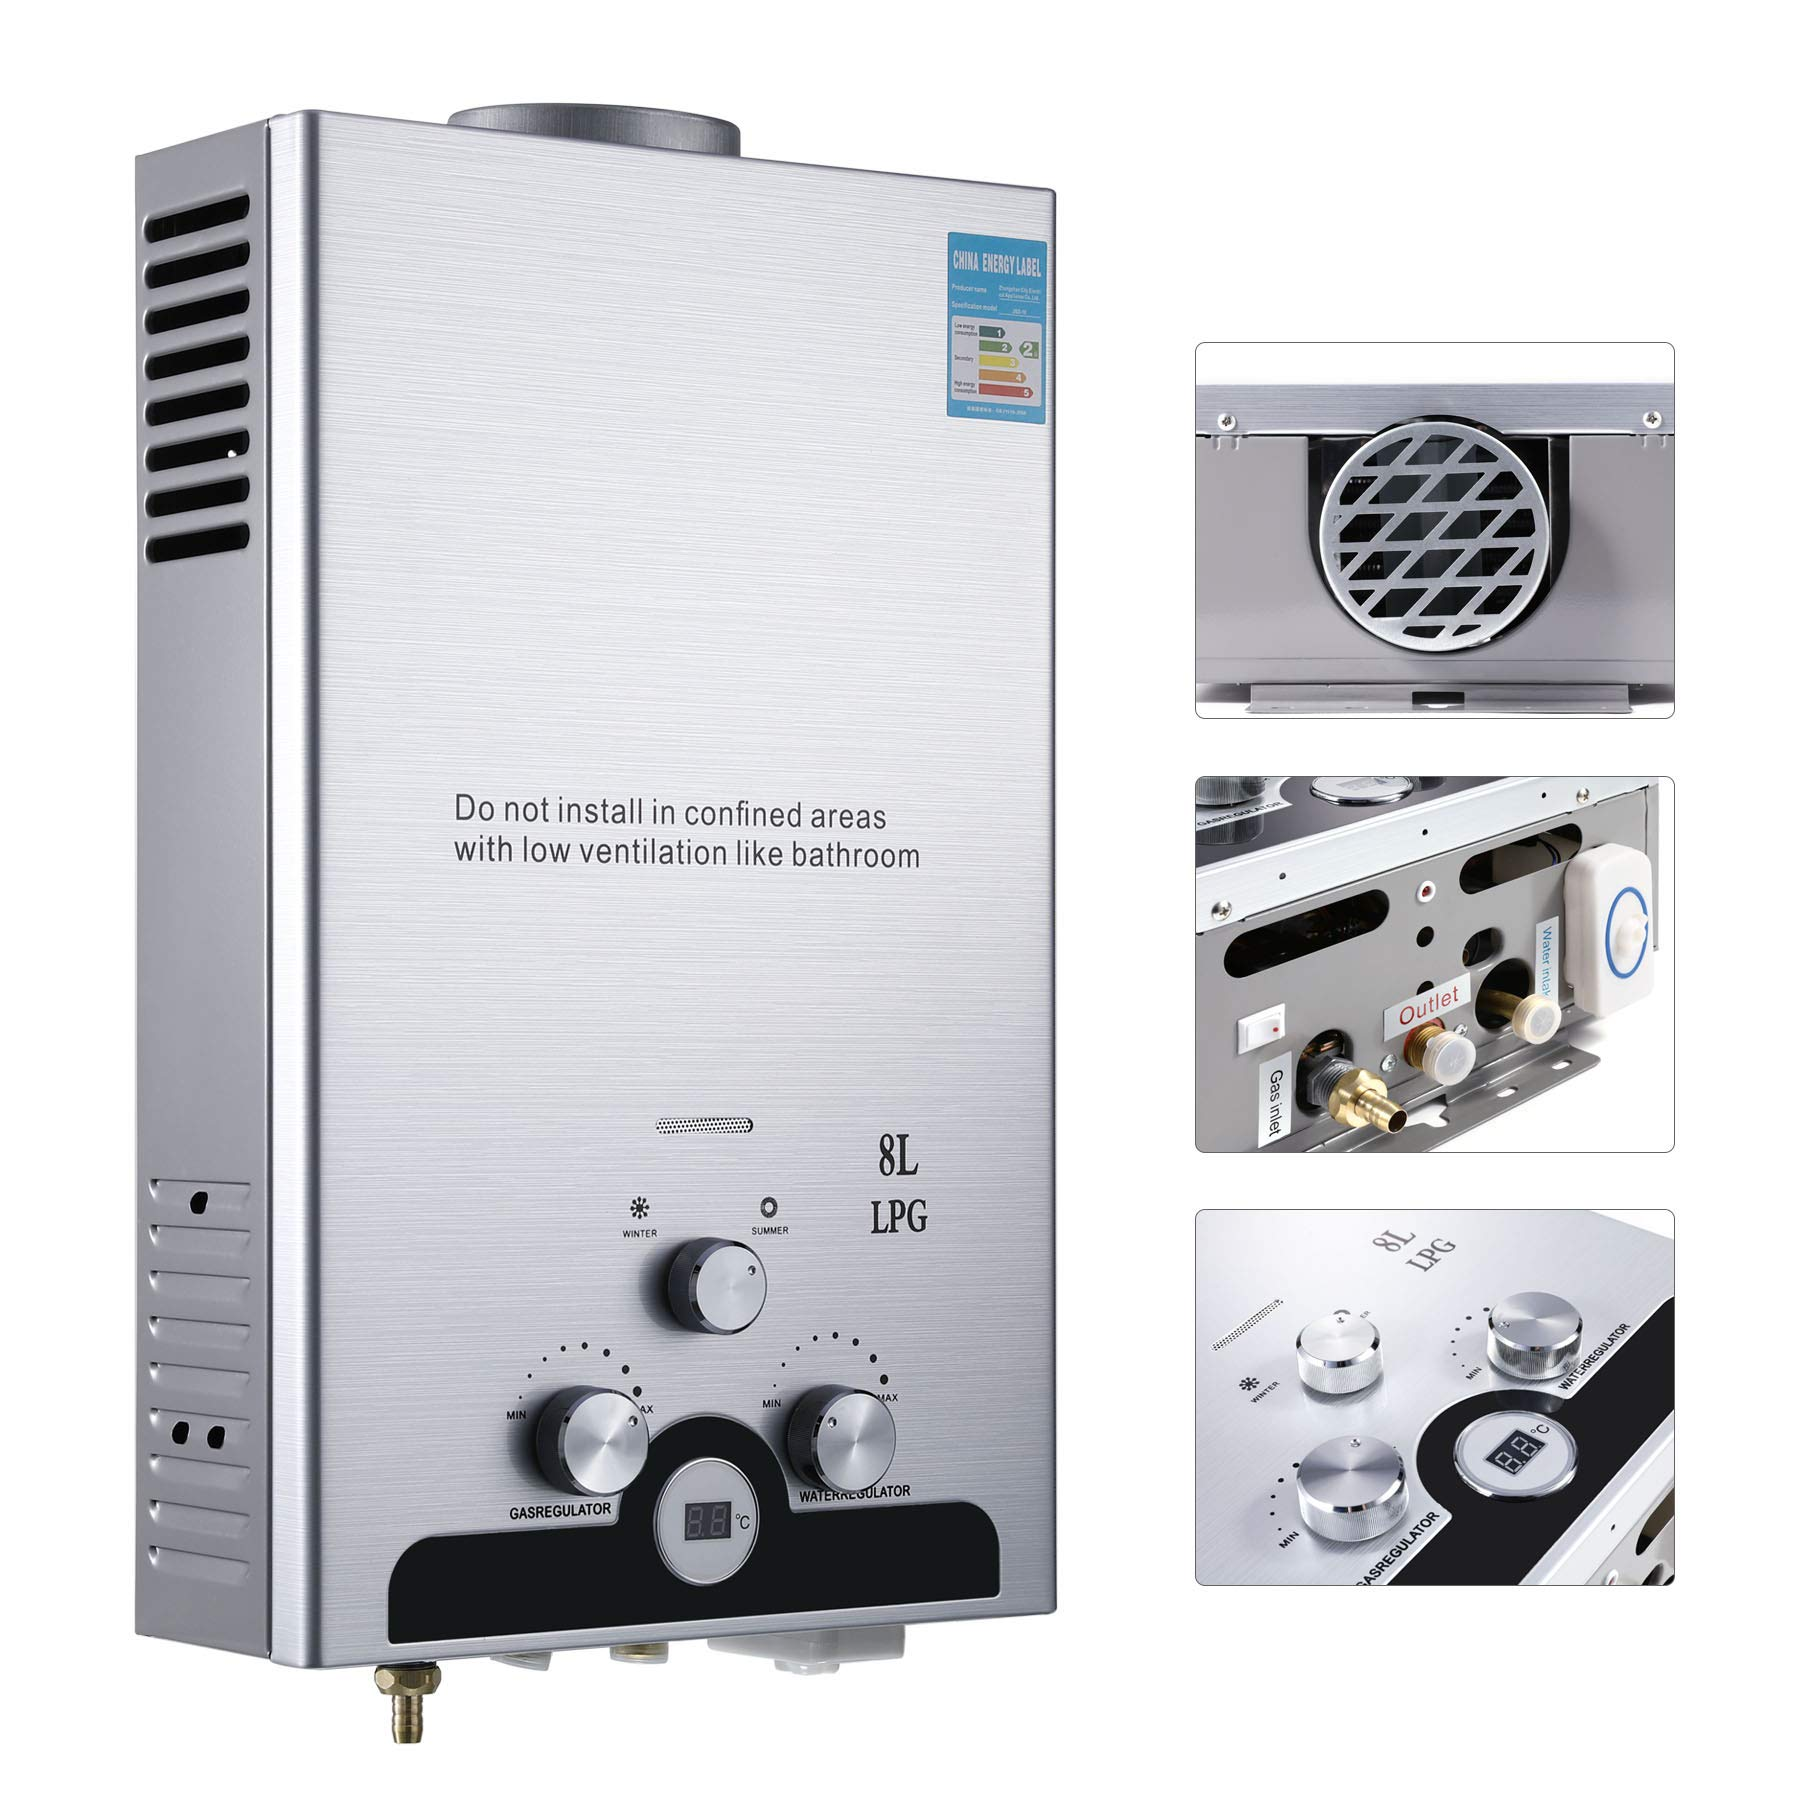 Valens LPG Hot Water Heater, 8L LPG Water Heater, 16kw Stainless Steel Automatic Ignition Liquefied Petroleum Gas Water Heater, Tankless Instant Boiler with LCD Display